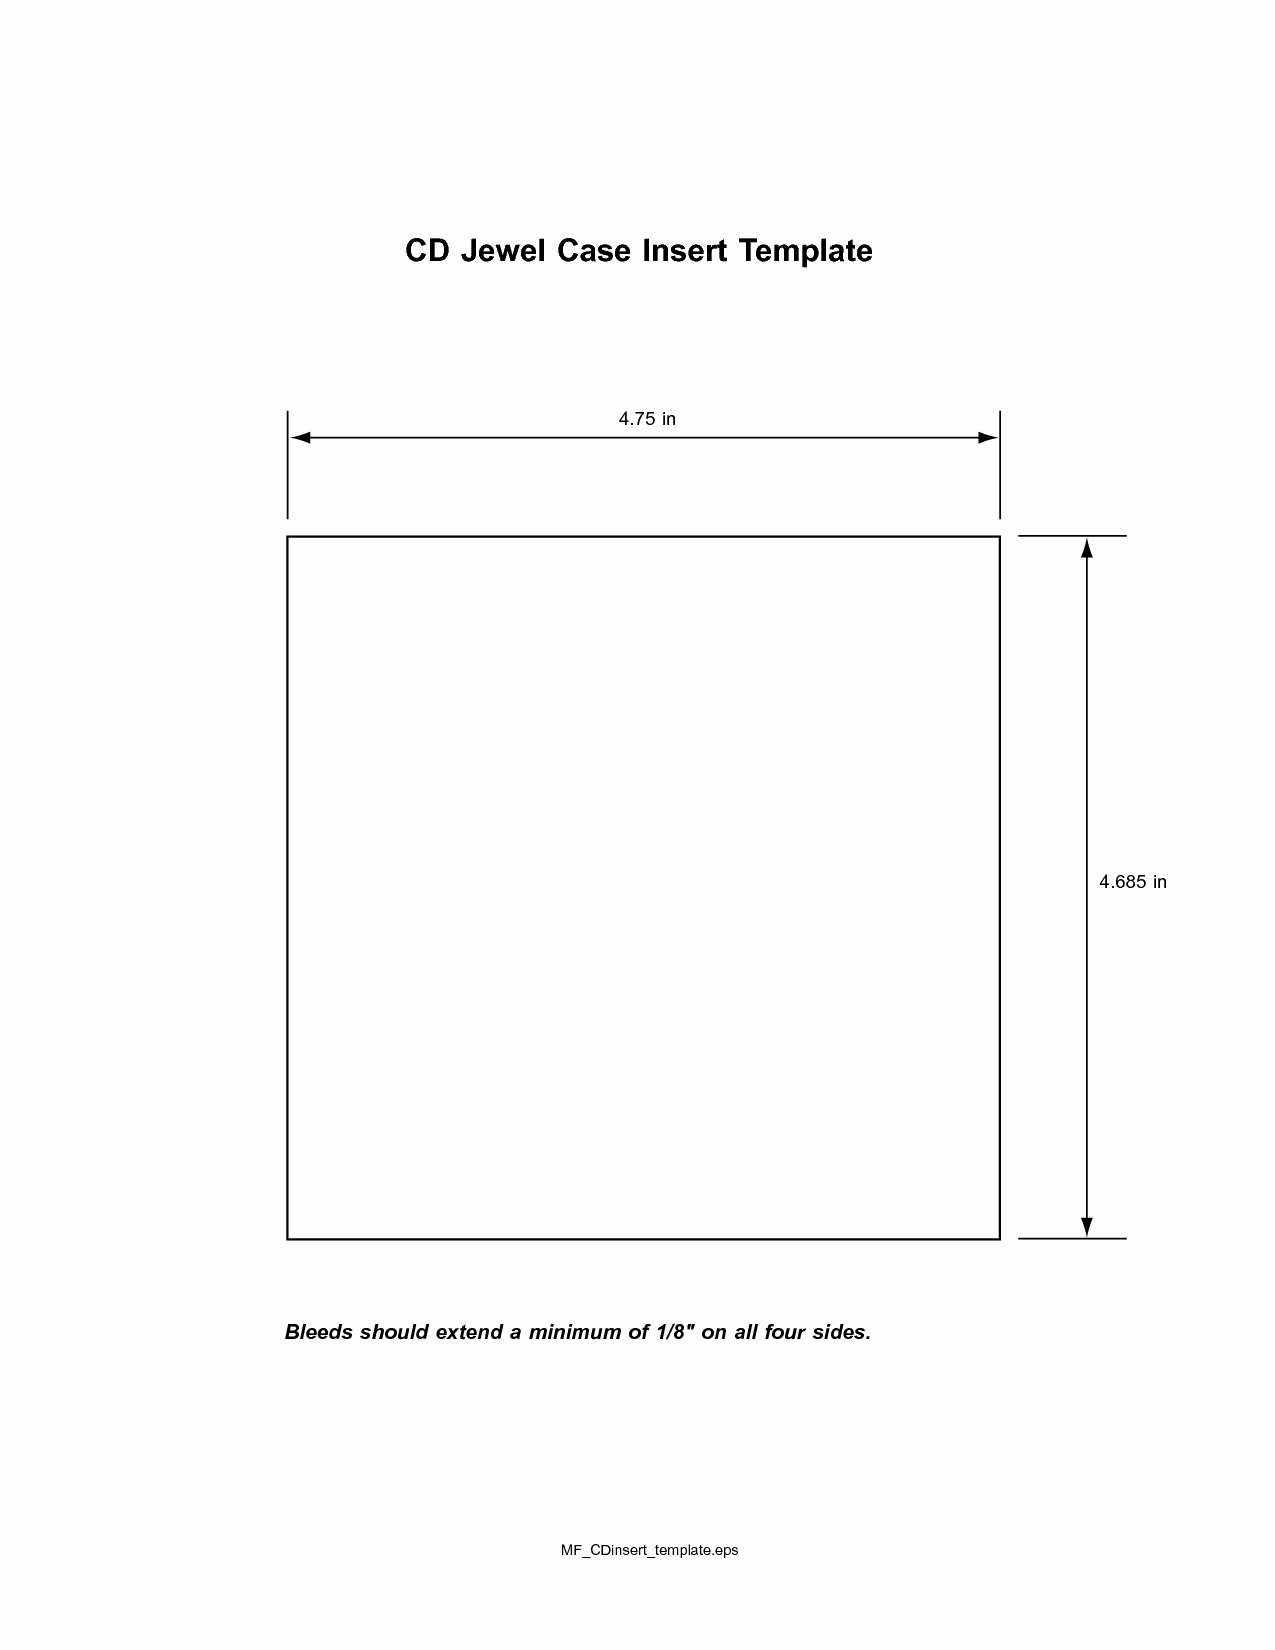 Jewel Case Inserts Template Awesome Cd Insert Template